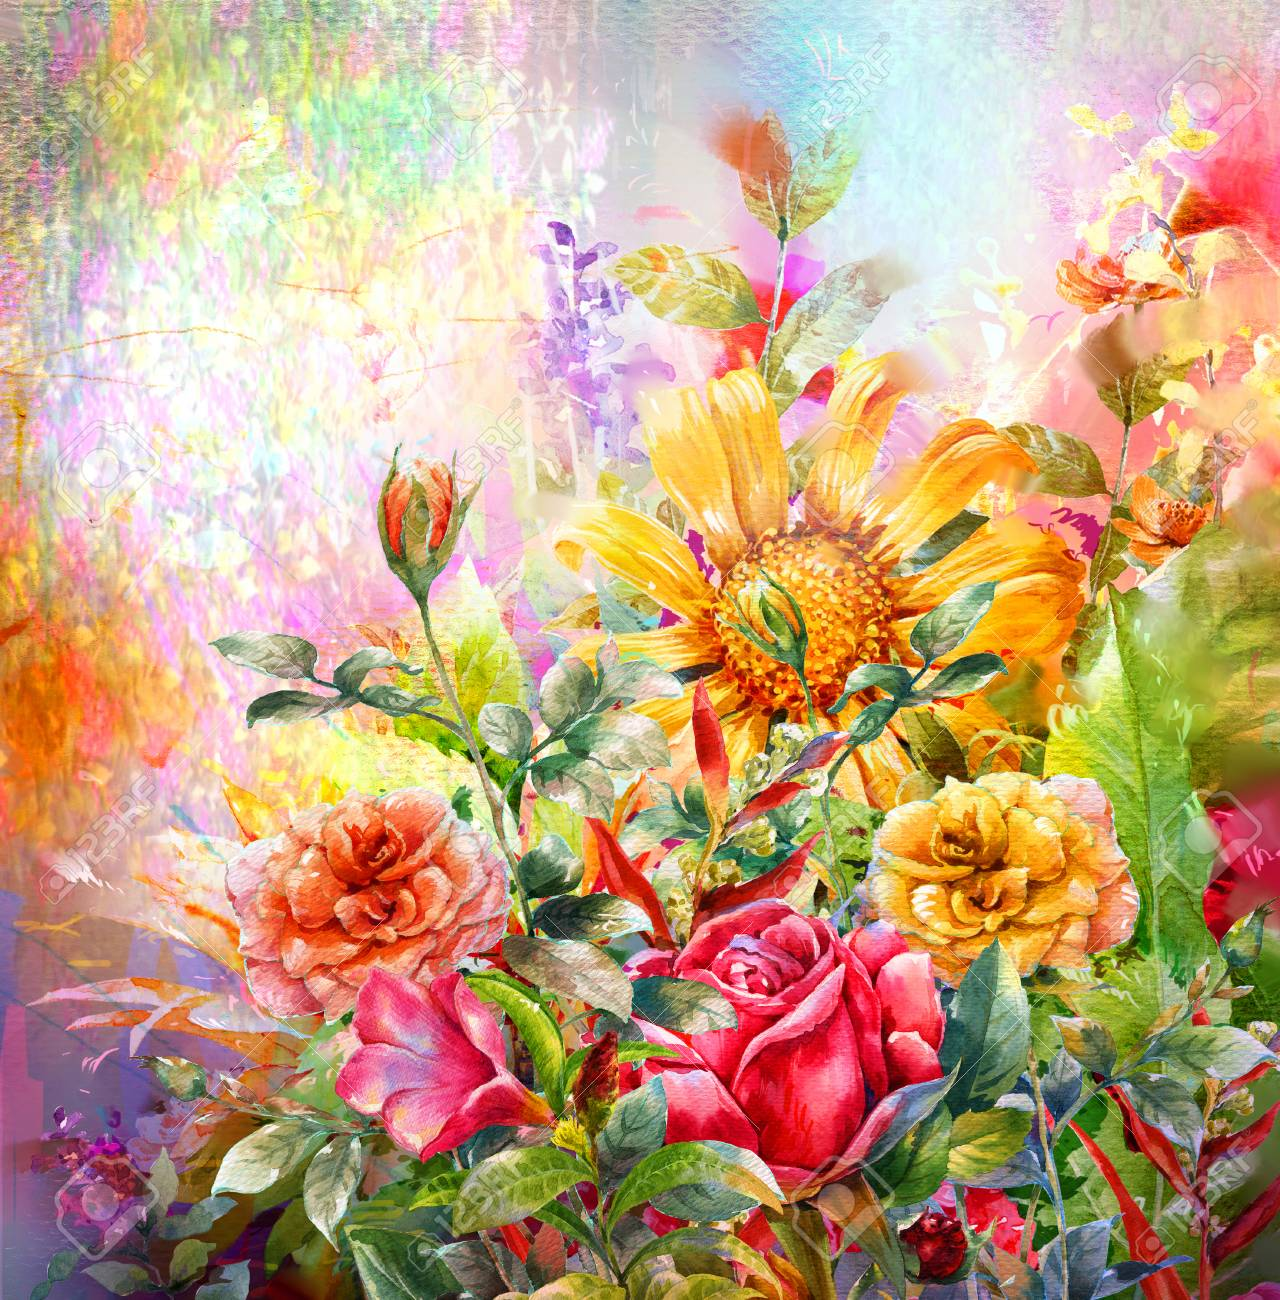 Abstract Flowers Watercolor Painting Spring Multicolored Flowers